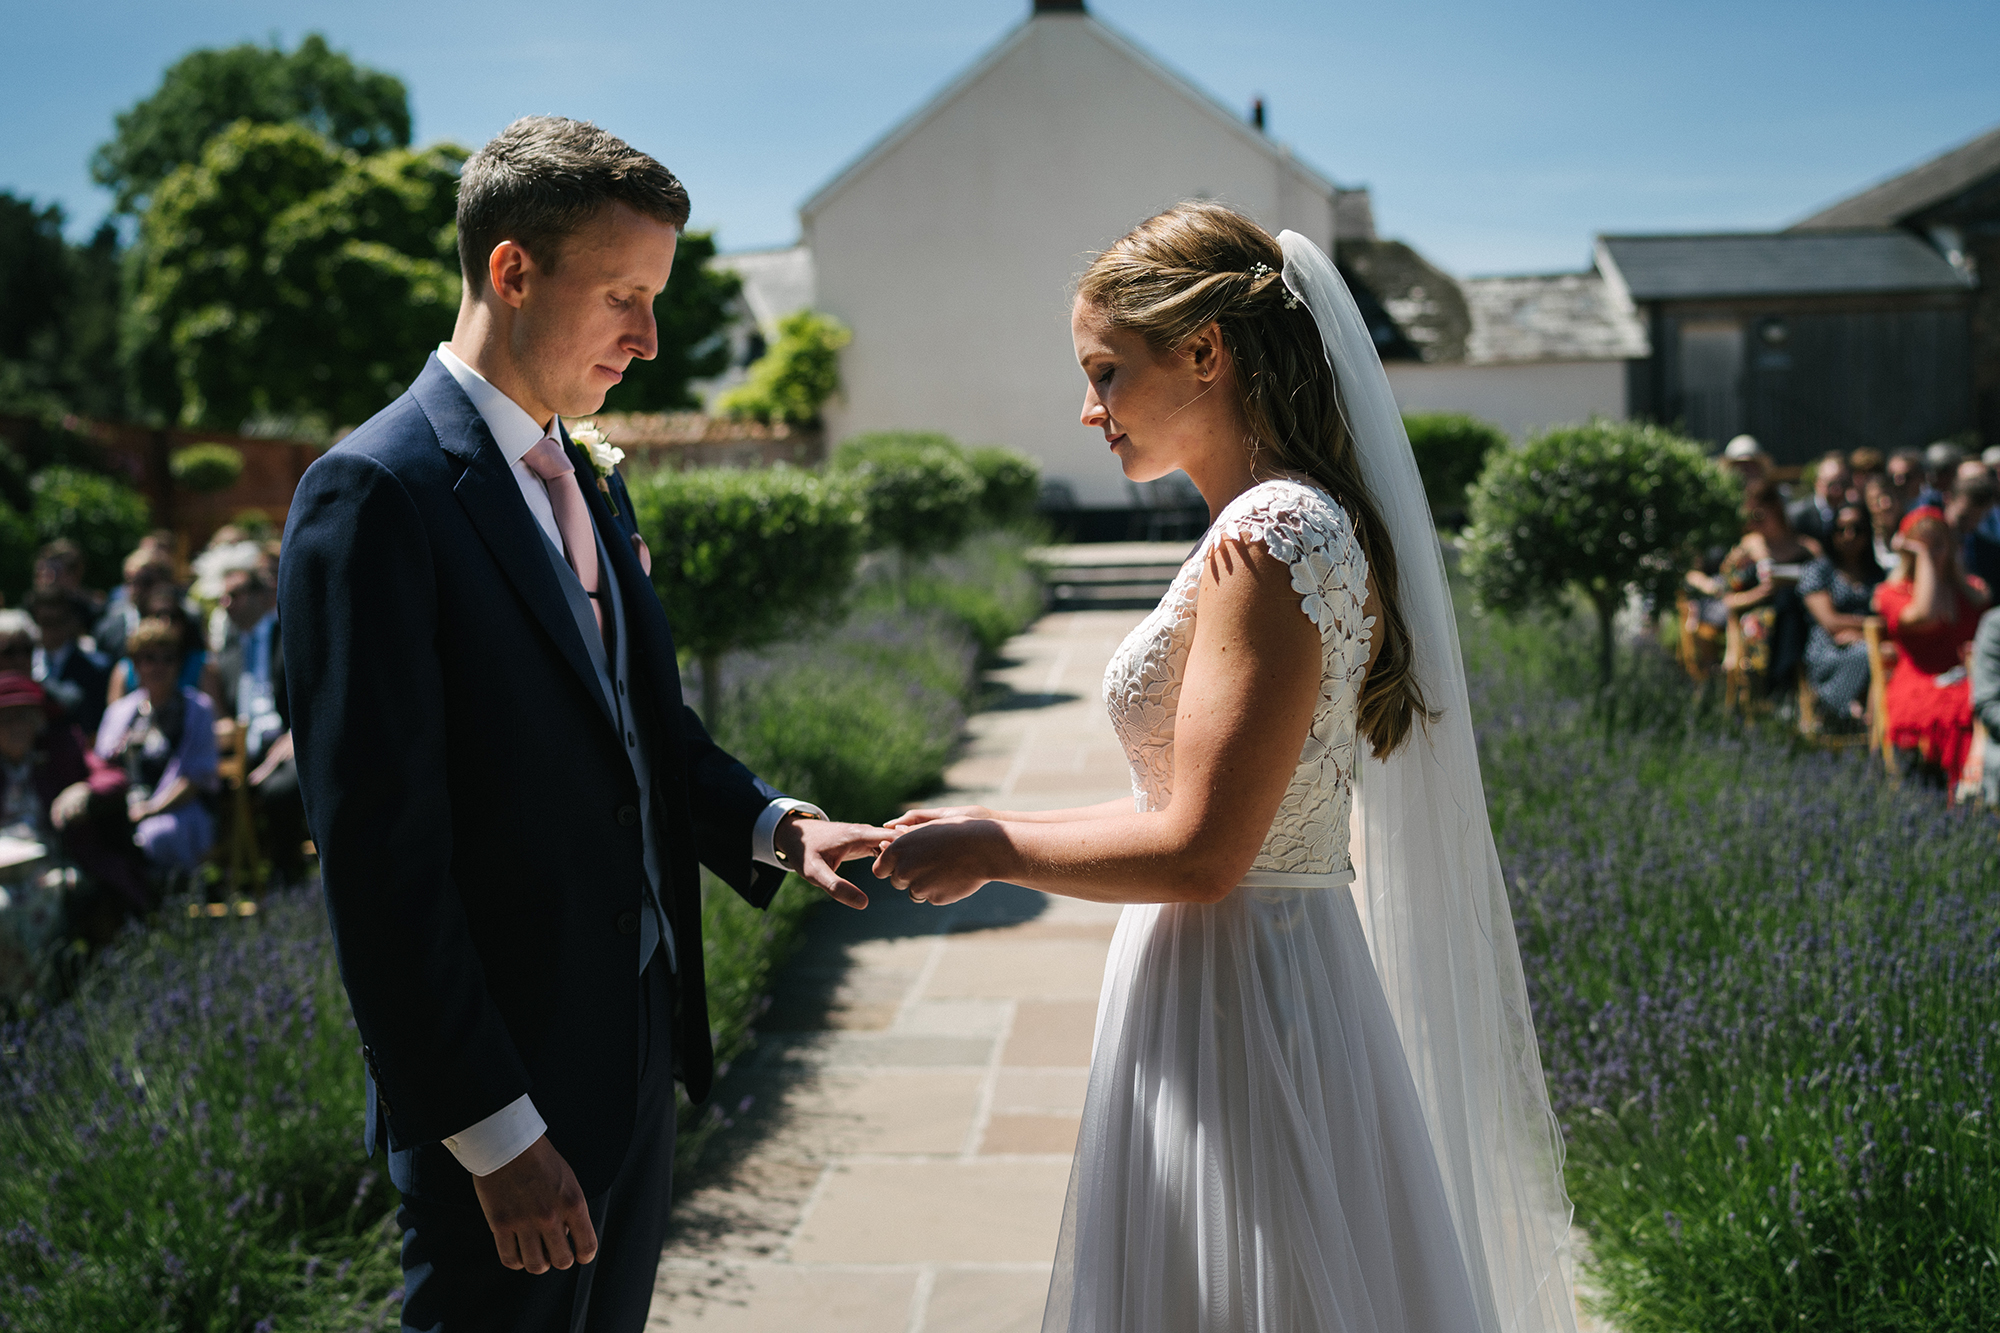 Bride places the ring on her grooms fingers in front of guests in Walled Garden